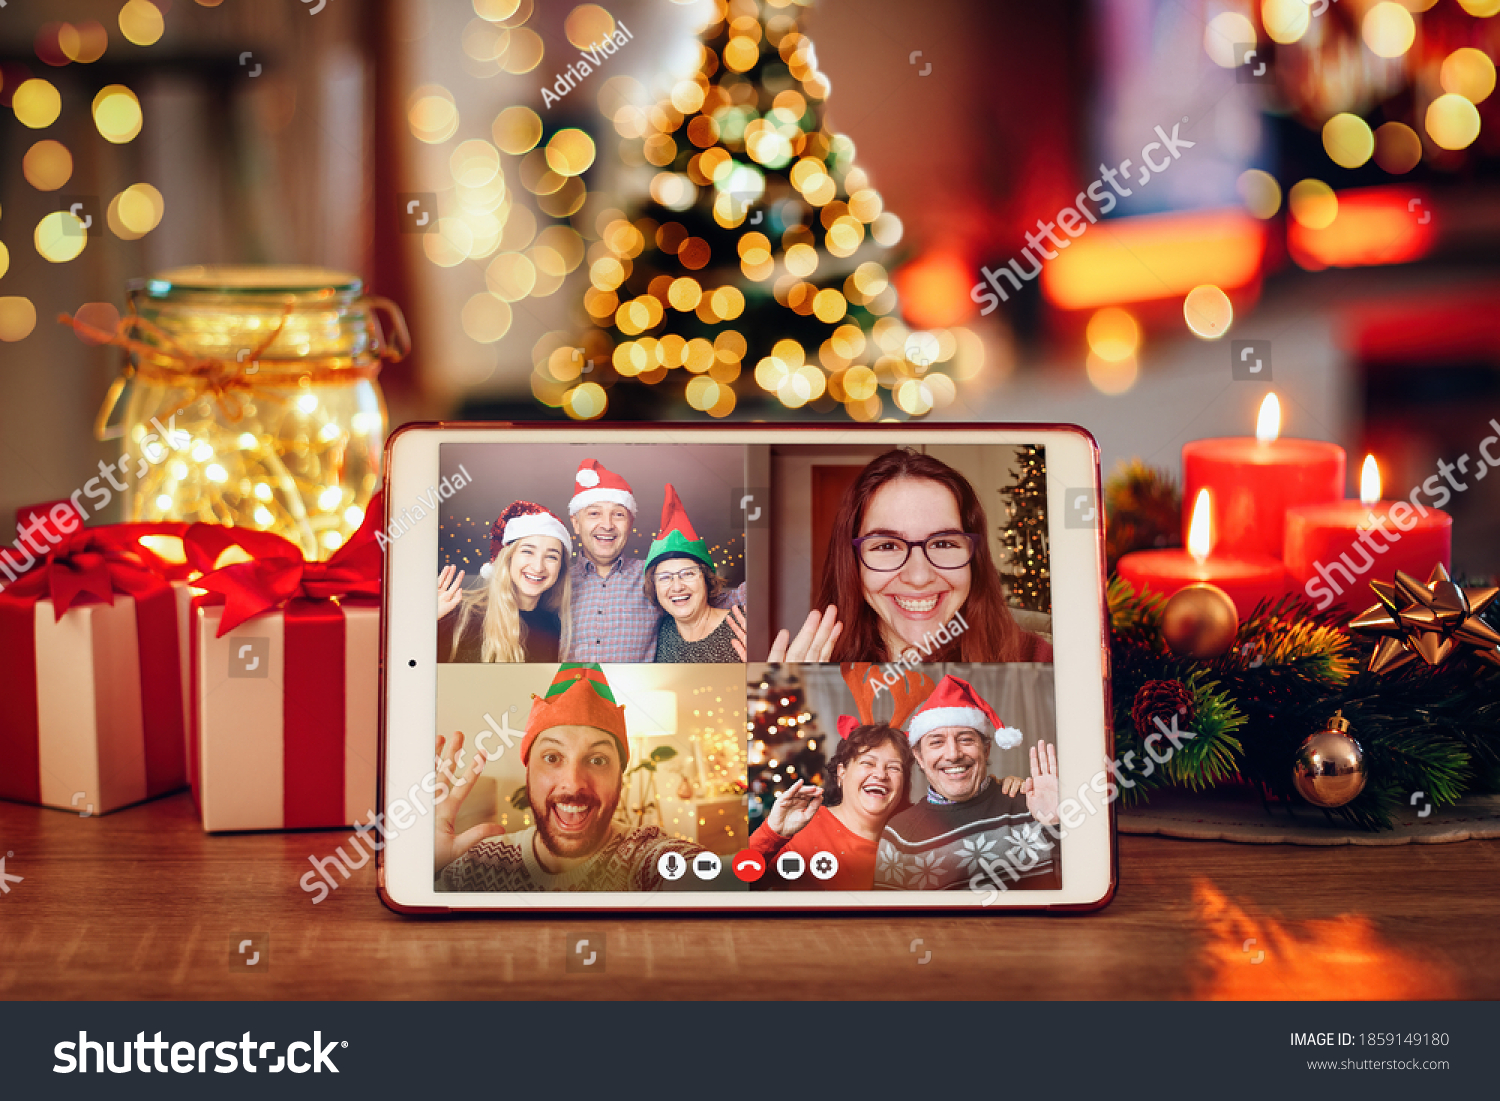 Christmas video call with the family. Concept of families in quarantine during Christmas because of the coronavirus. Xmas still life with a tablet in a cozy room #1859149180